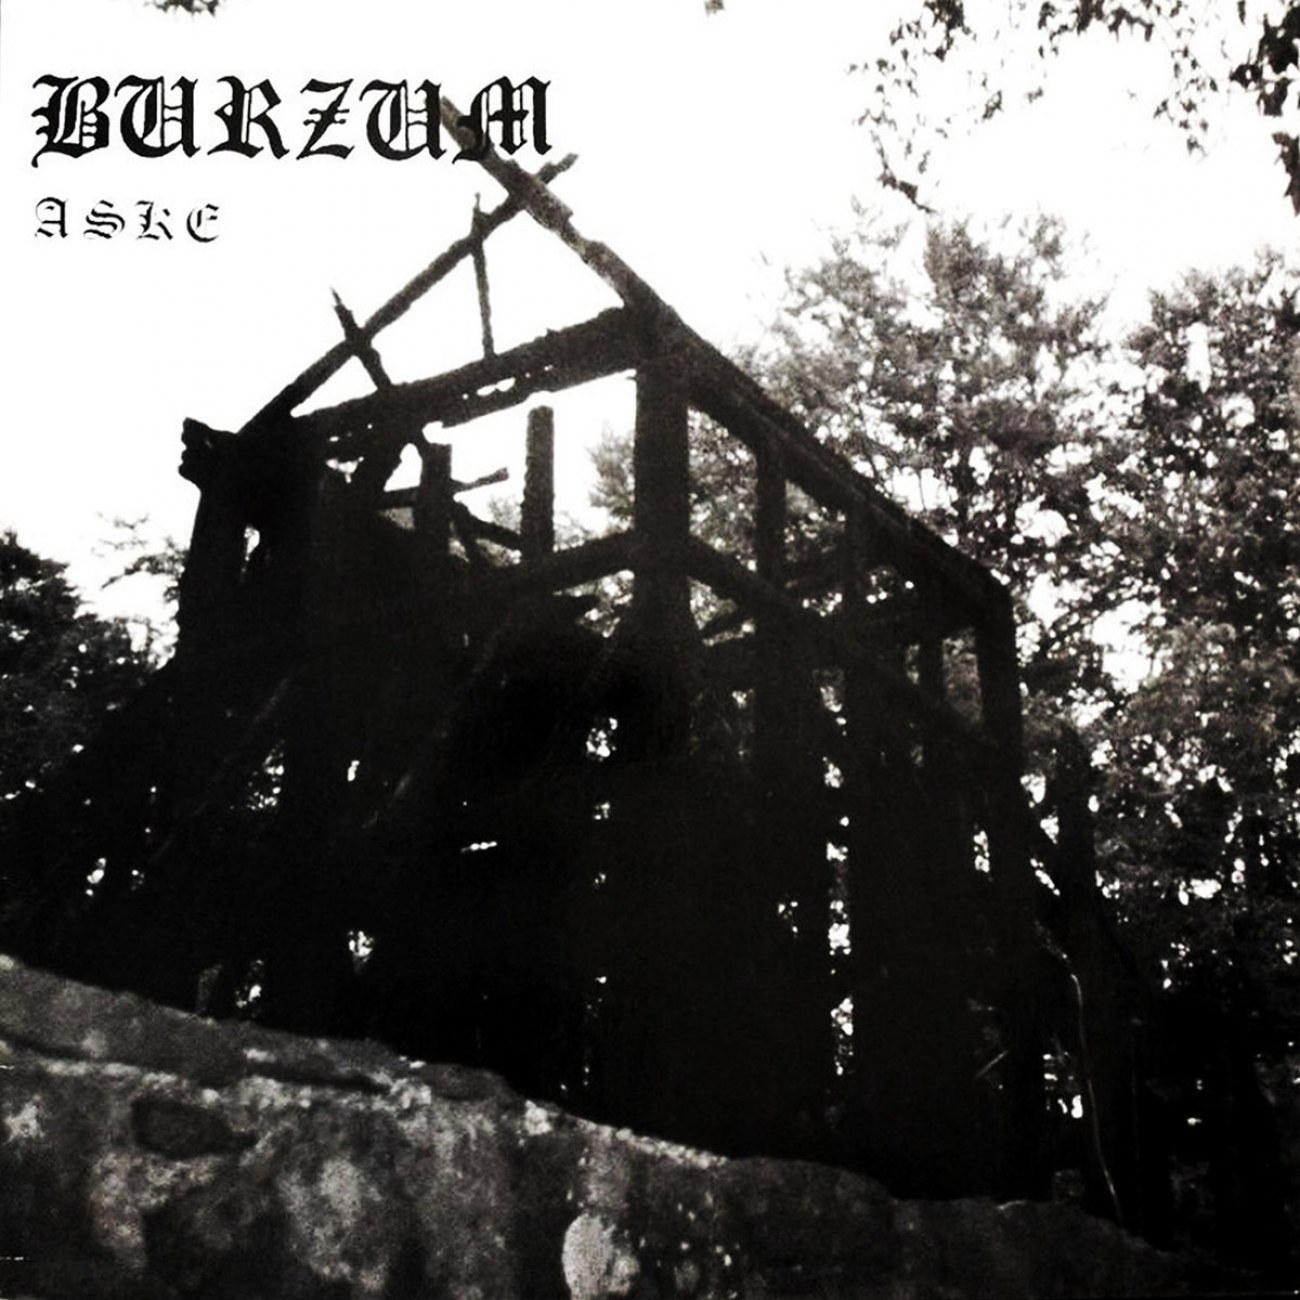 Review for Burzum - Aske